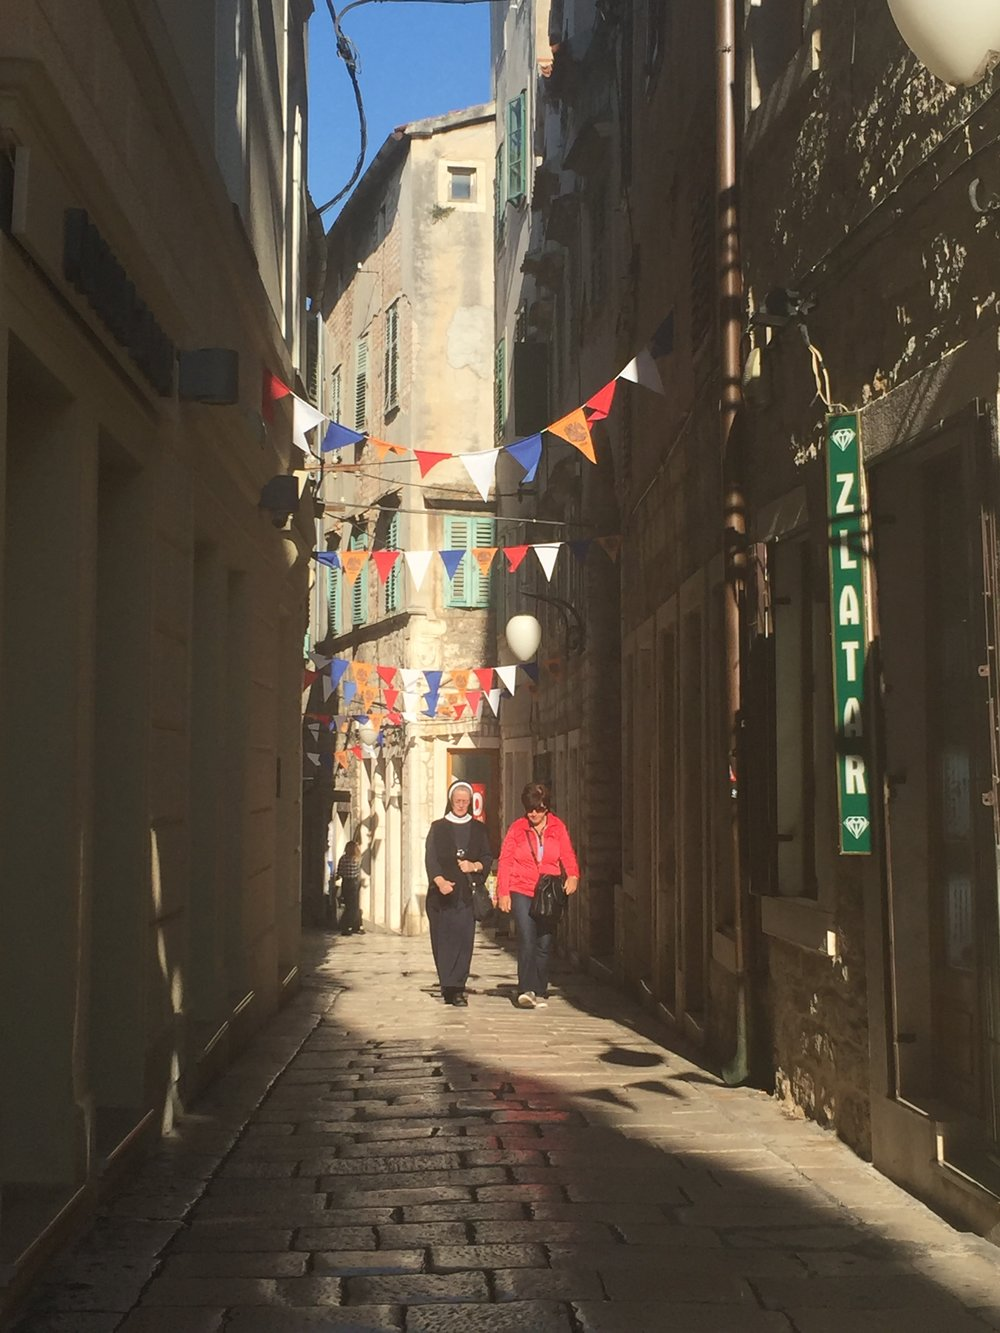 Quiet walk in a sunlit side street of old Šibenik. I actually took this photo and am quite proud of it. Evidence of the old and the new in Dalmatia blend in harmoniously.